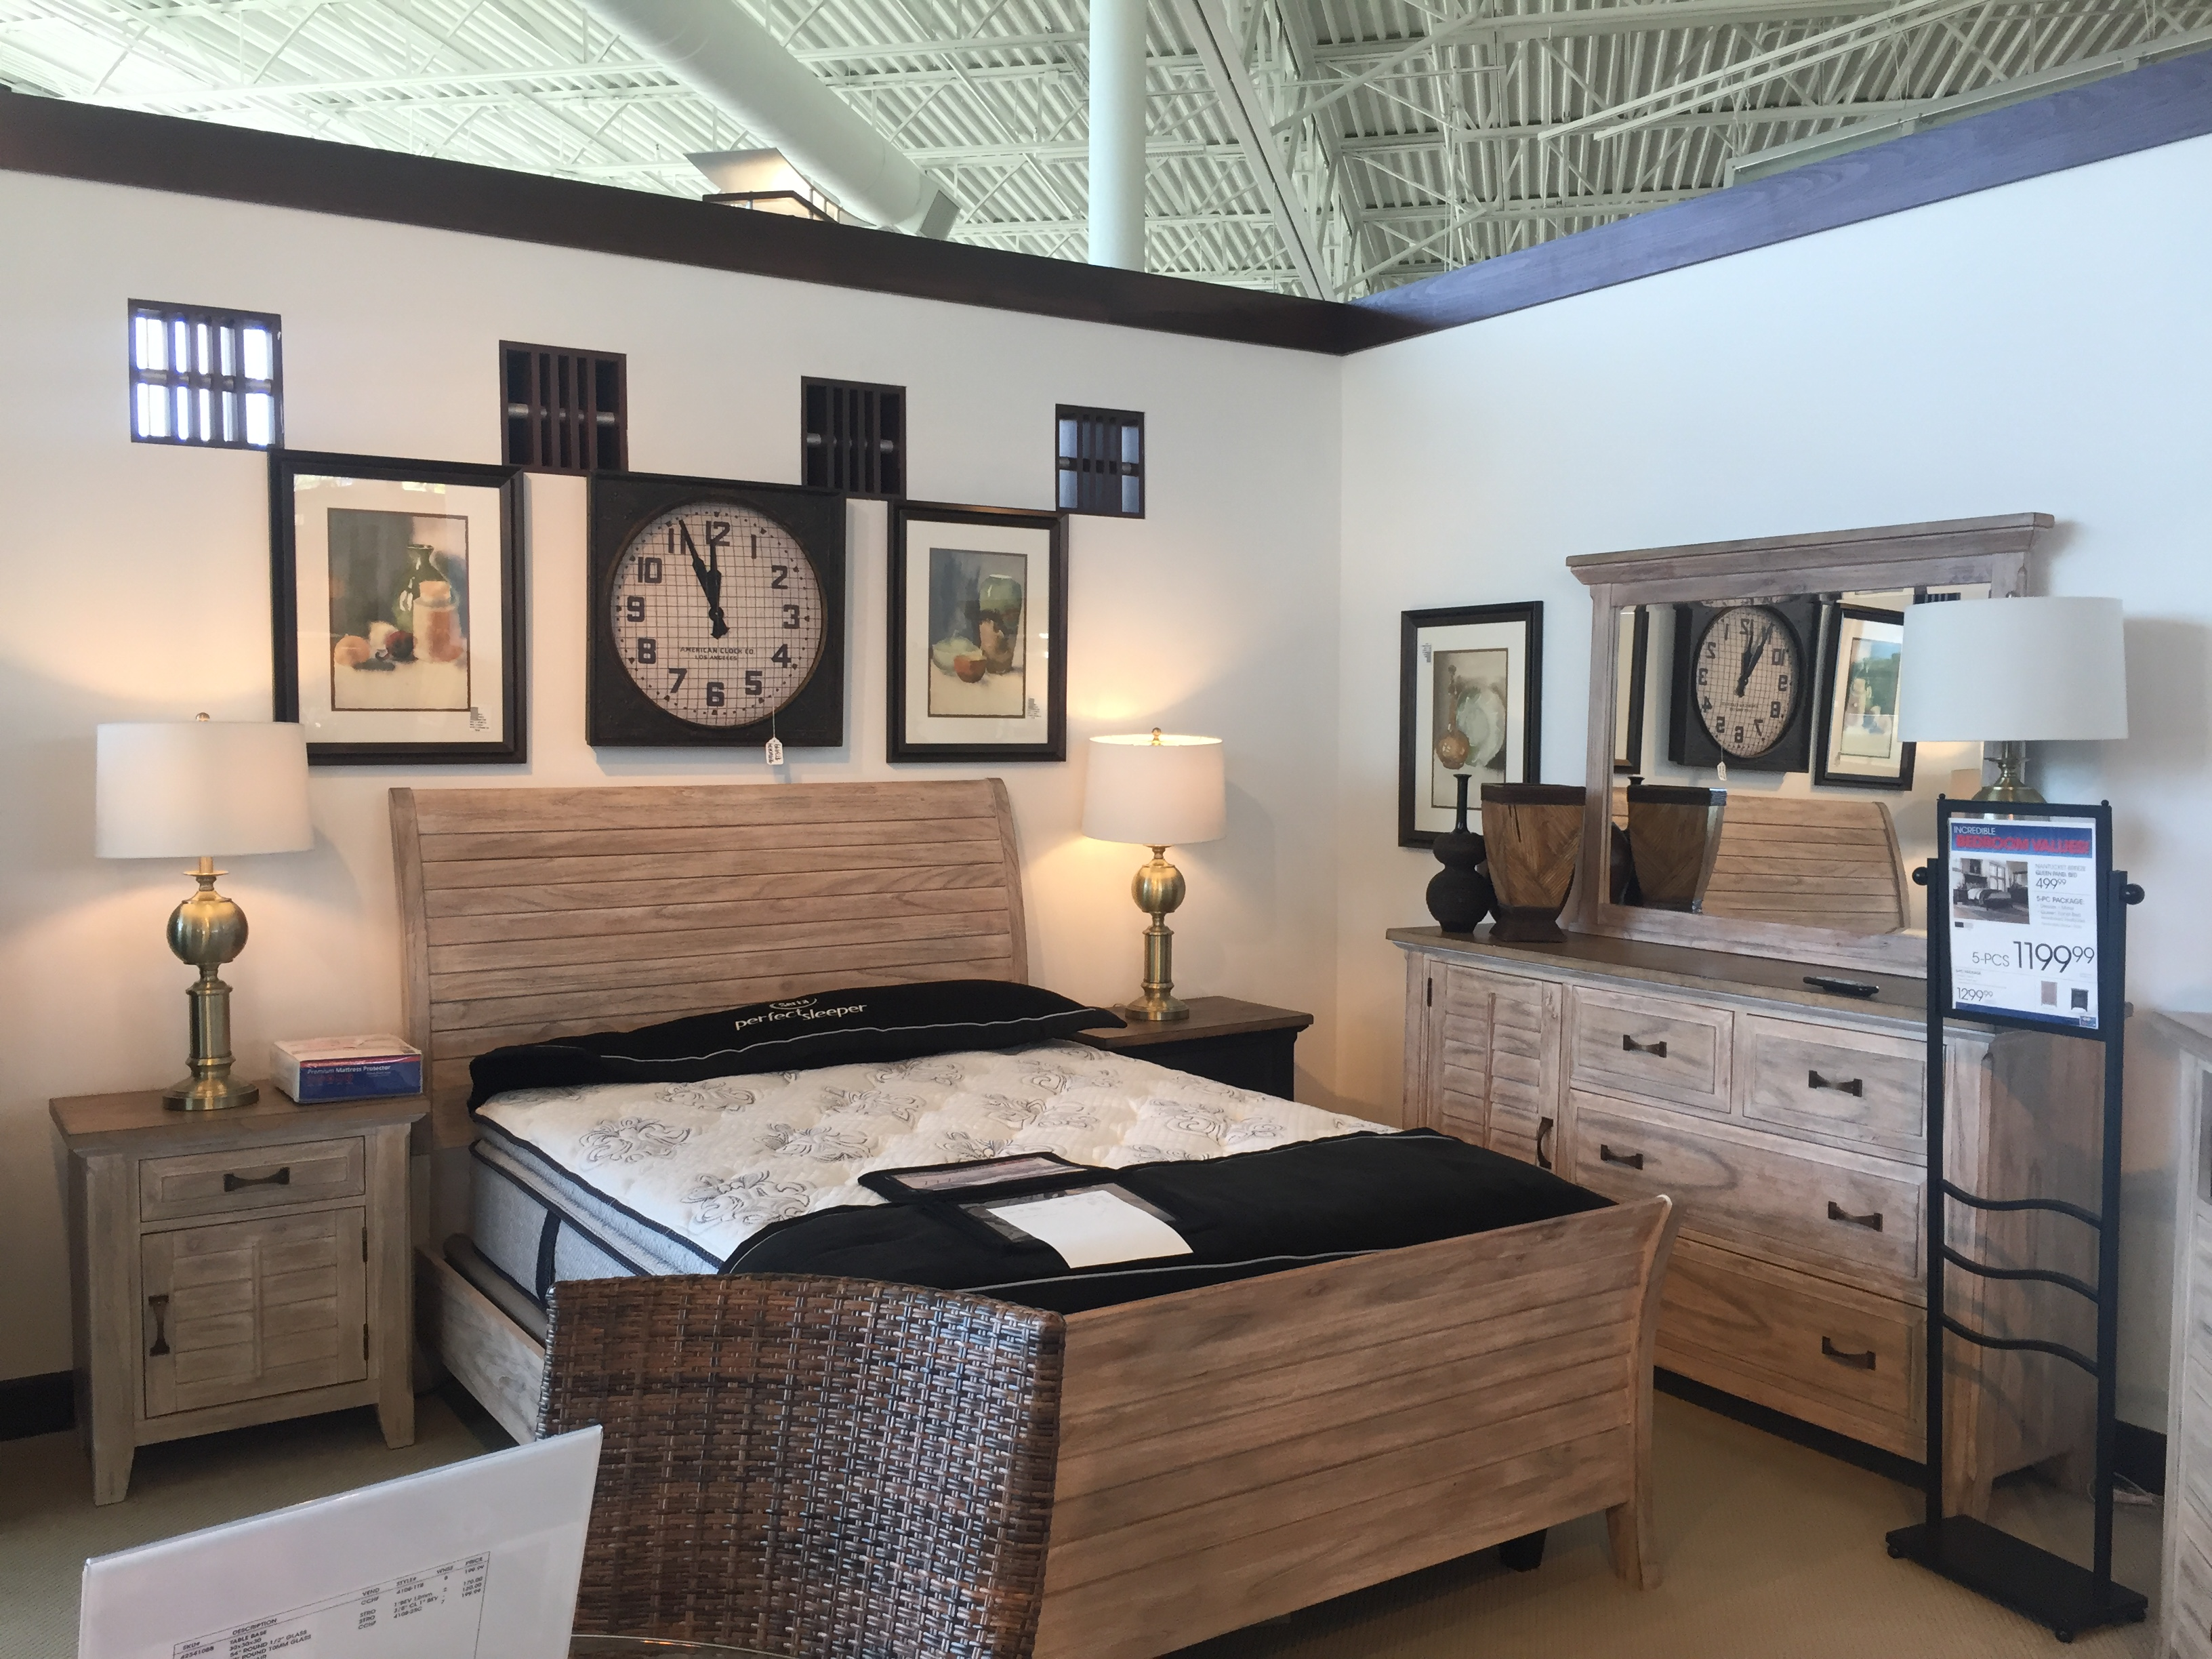 quelques magasins de meubles aux usa. Black Bedroom Furniture Sets. Home Design Ideas